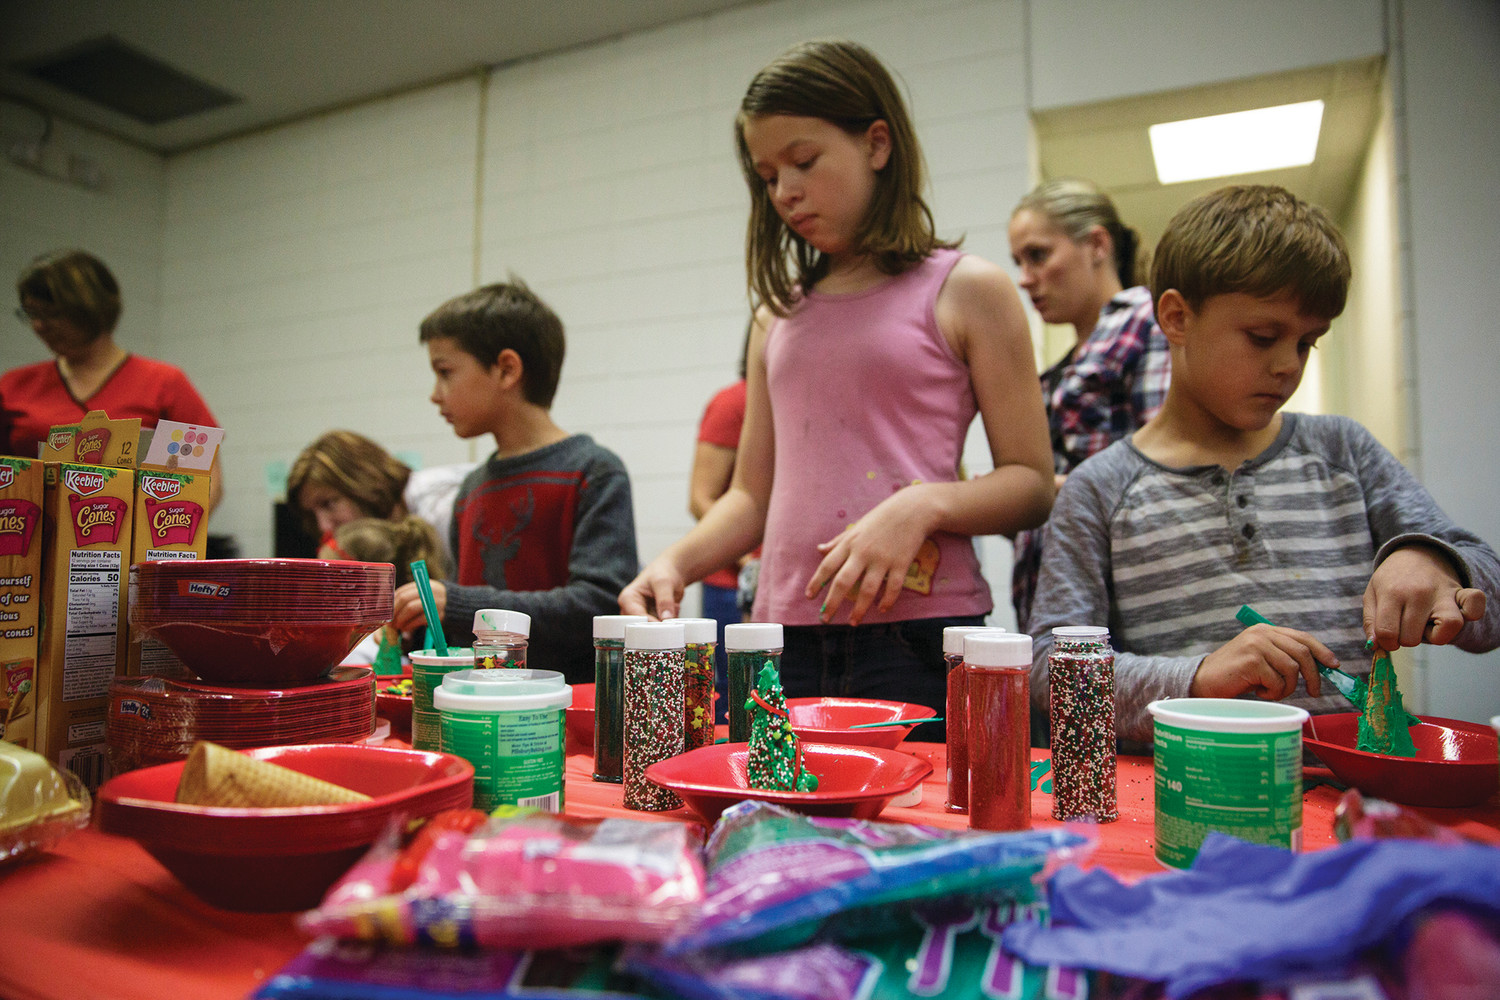 Children create icing and candy christmas trees using upside down ice cream cones as the base for the tree shape Monday evening at the Green Cove Springs Library.